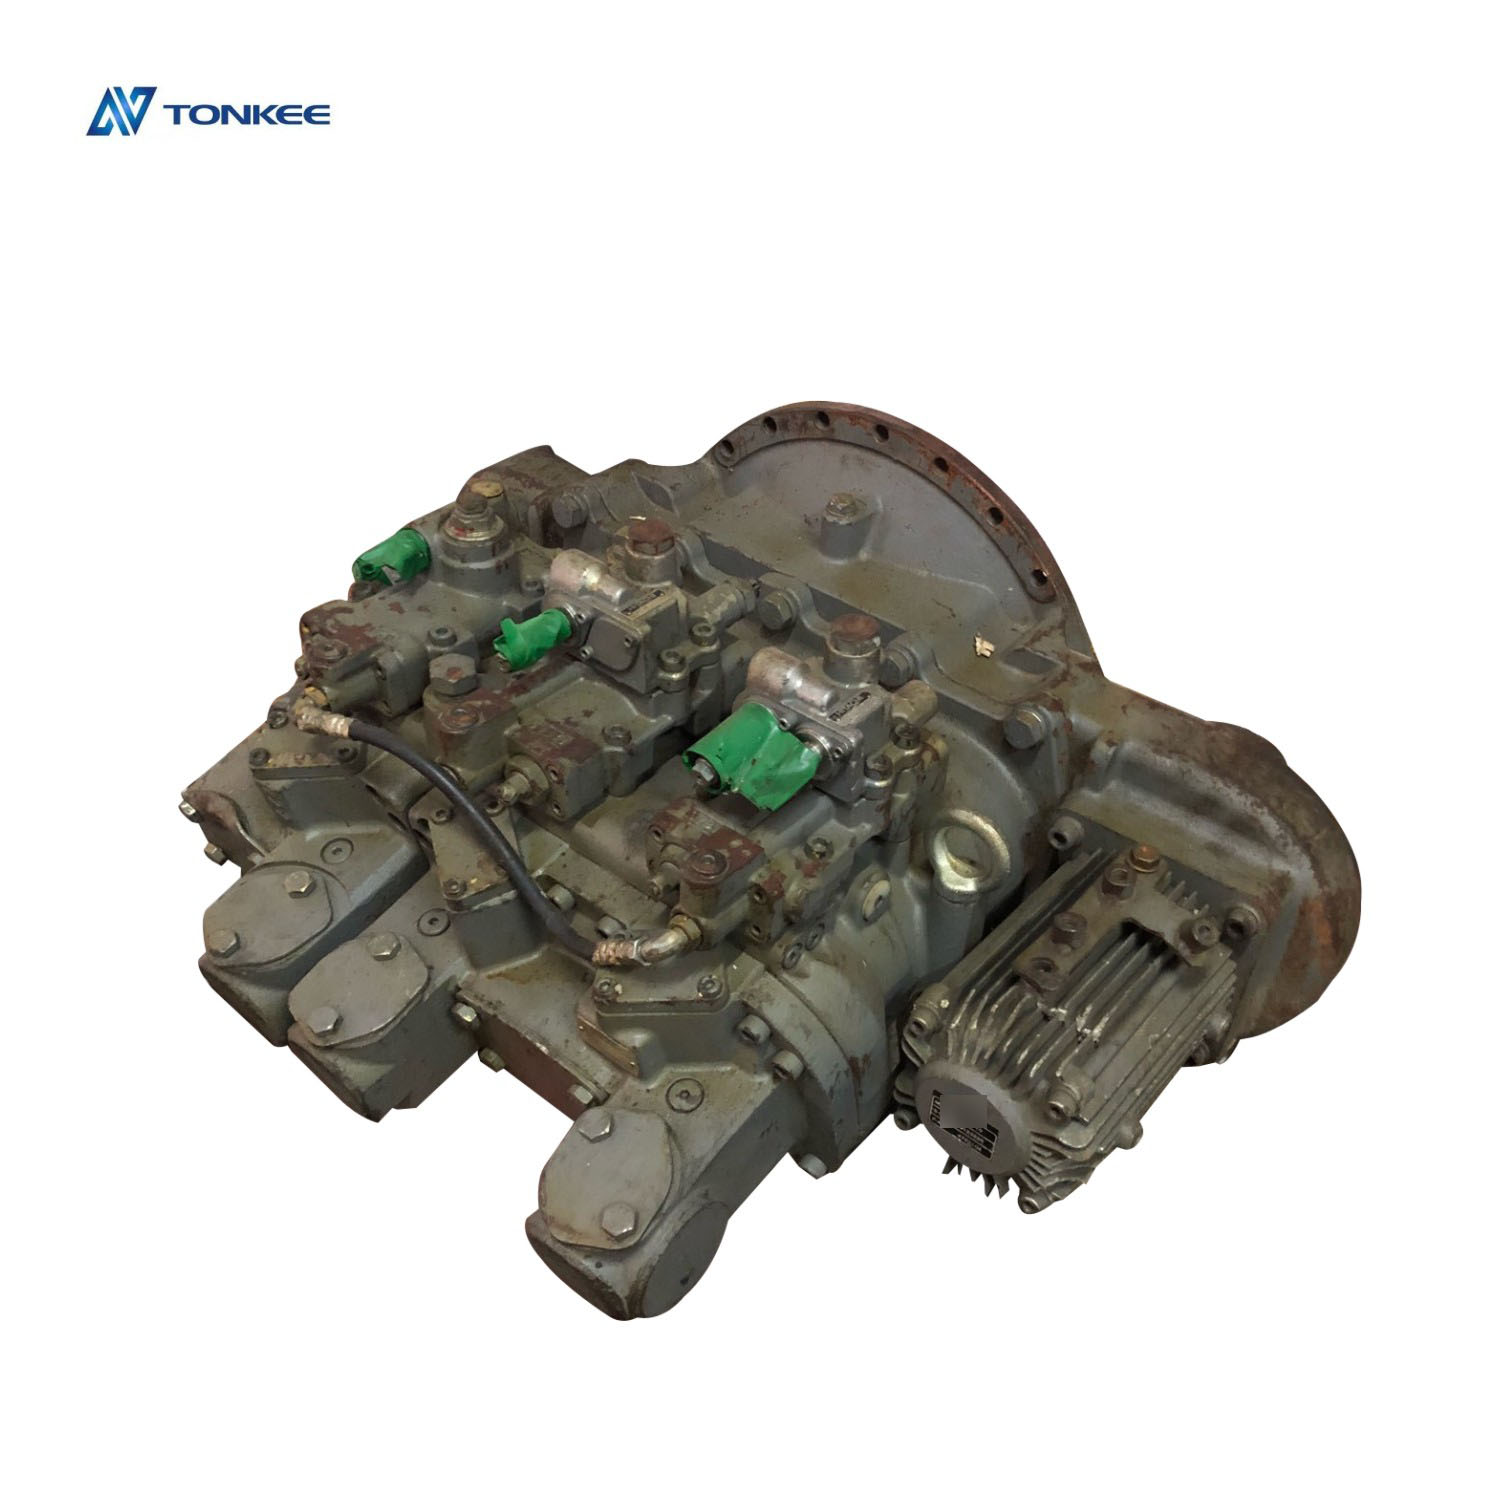 HITACHI genuine used 4723104 YB60000335 HPV118JX-23C hydraulic main pump excavator ZH200-A ZH200LC-A HPV118JX hydraulic pump device